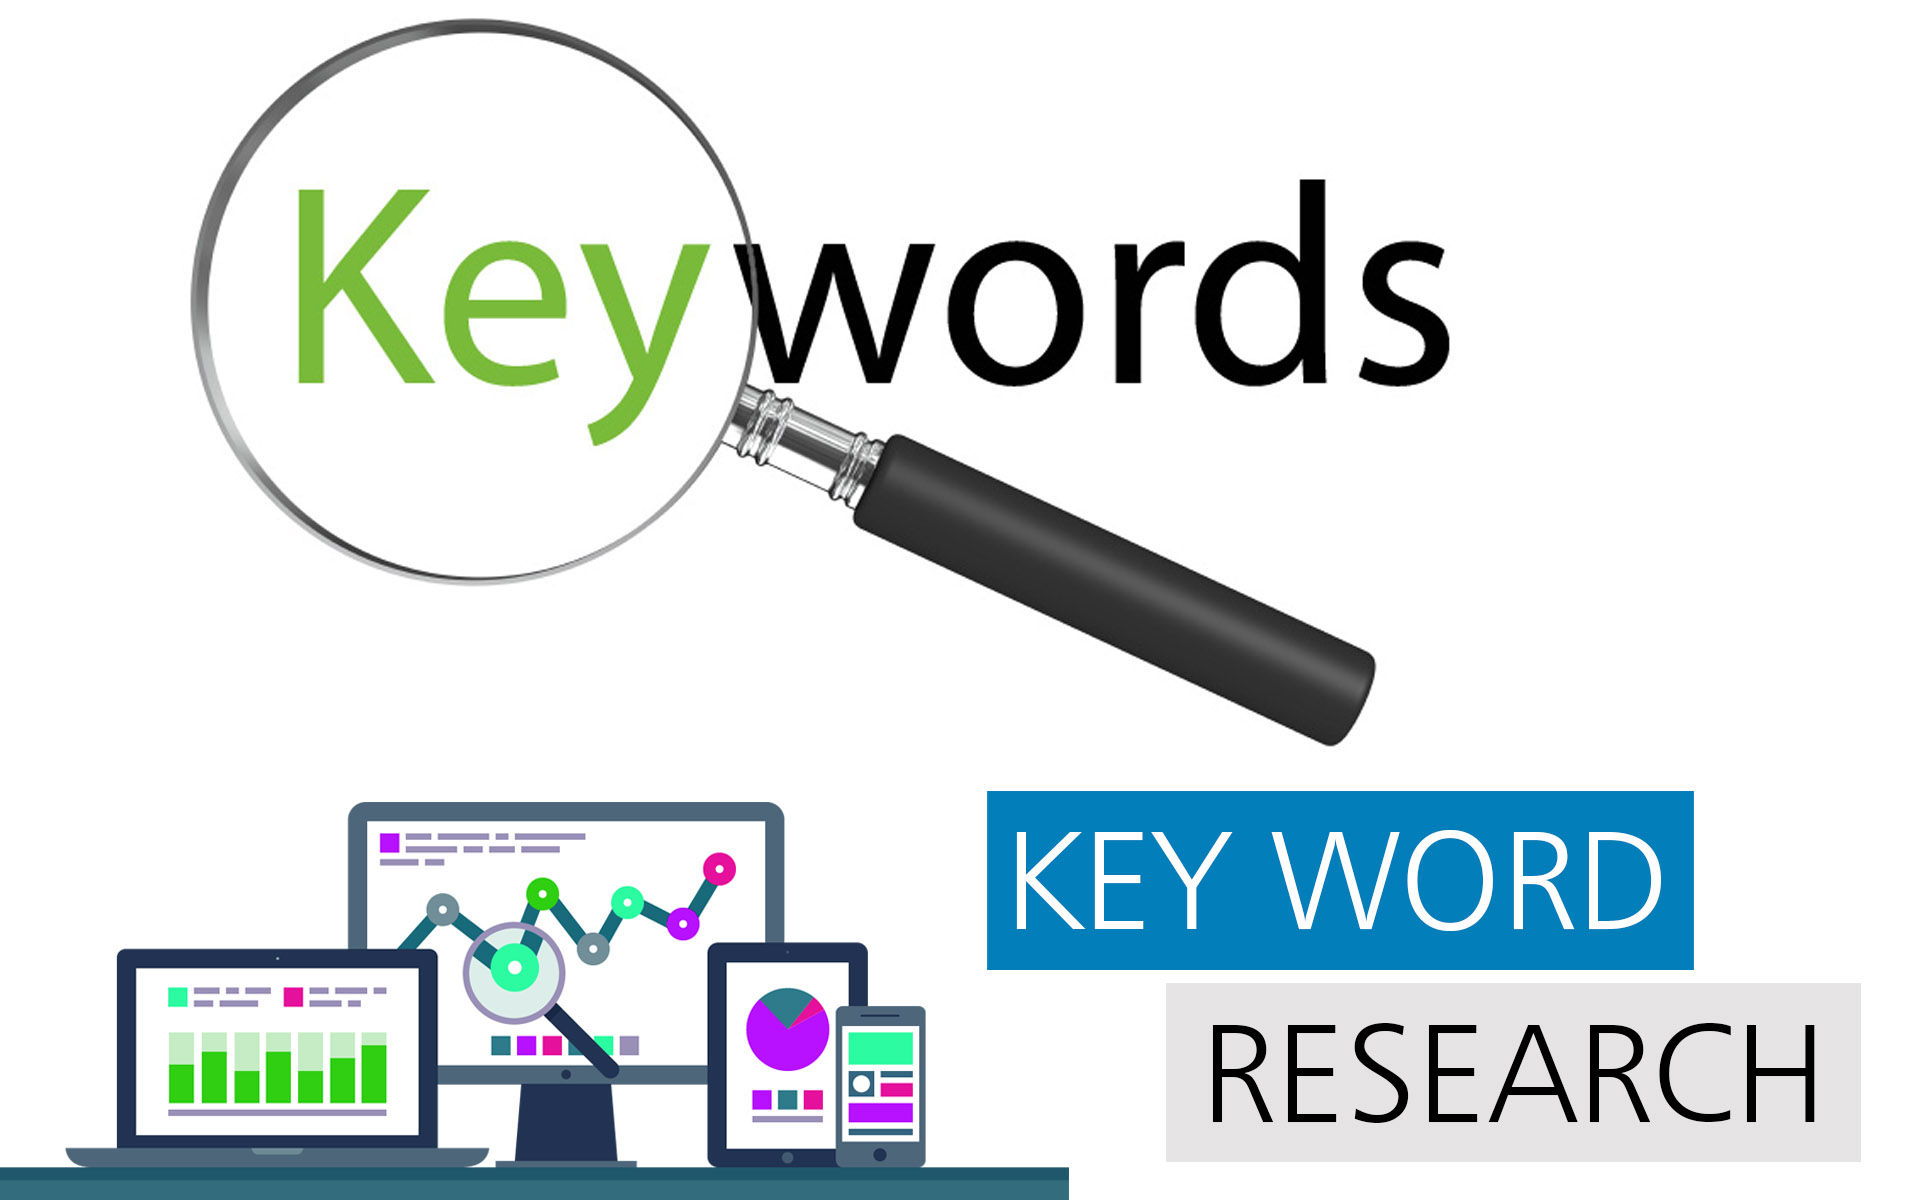 Key word research for search engine optimization